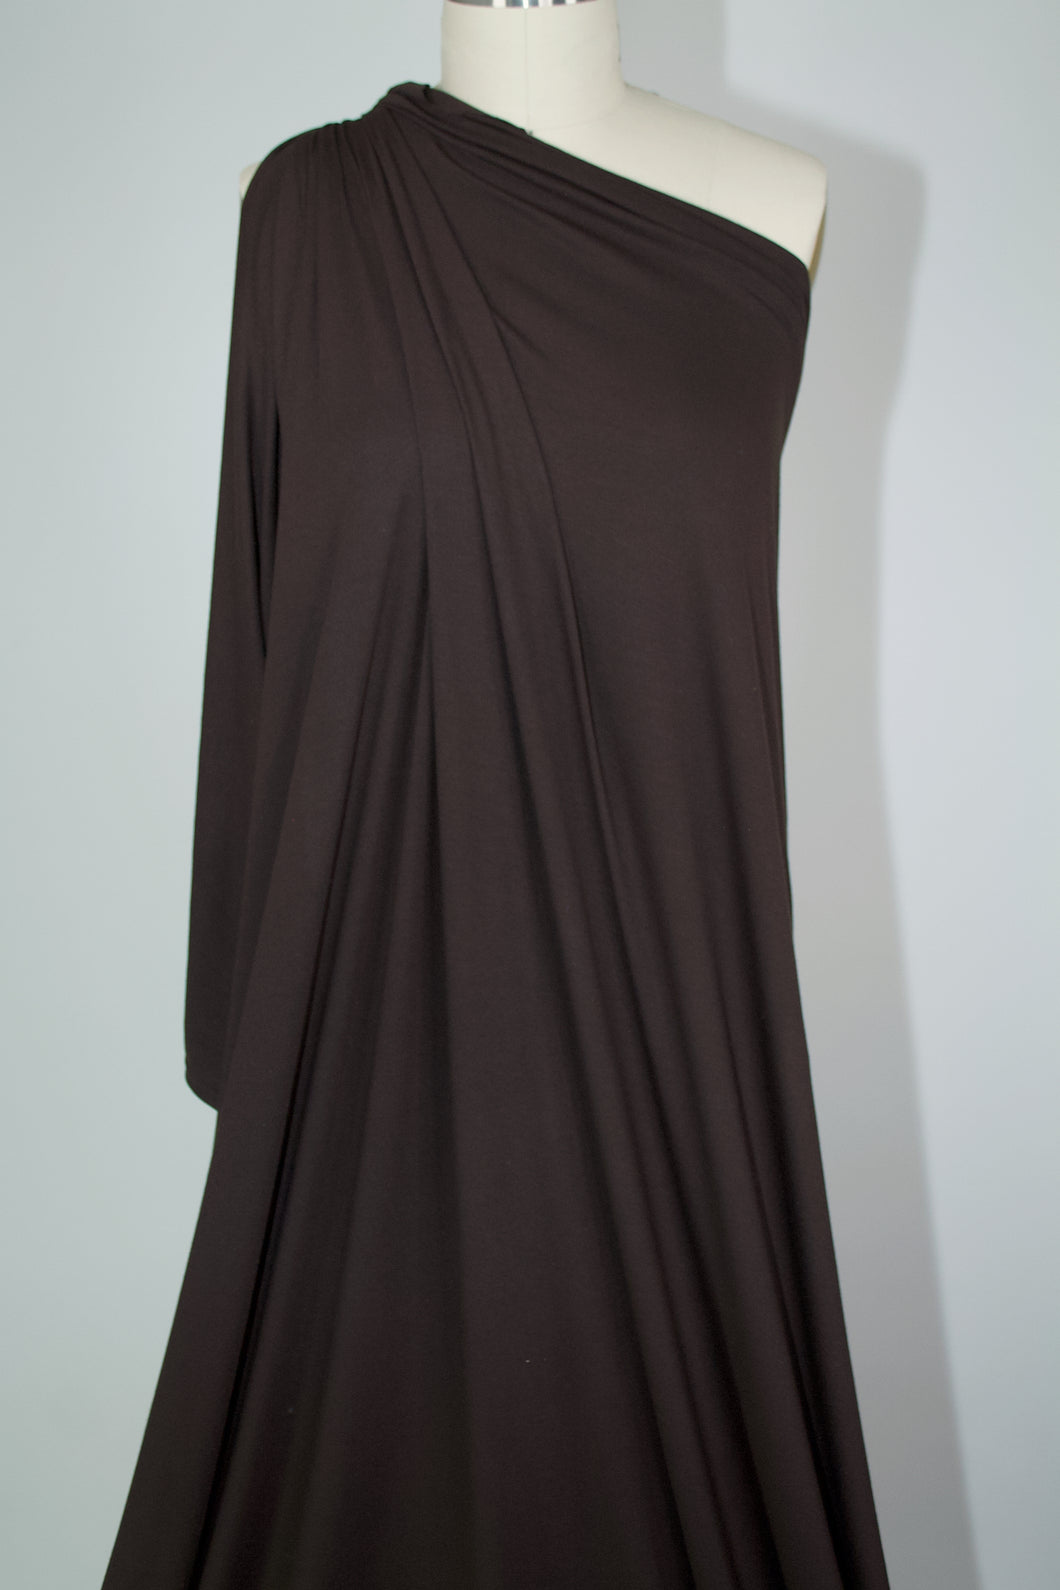 1+ yard of Extra Wide, Soft Rayon Jersey - Bittersweet Chocolate